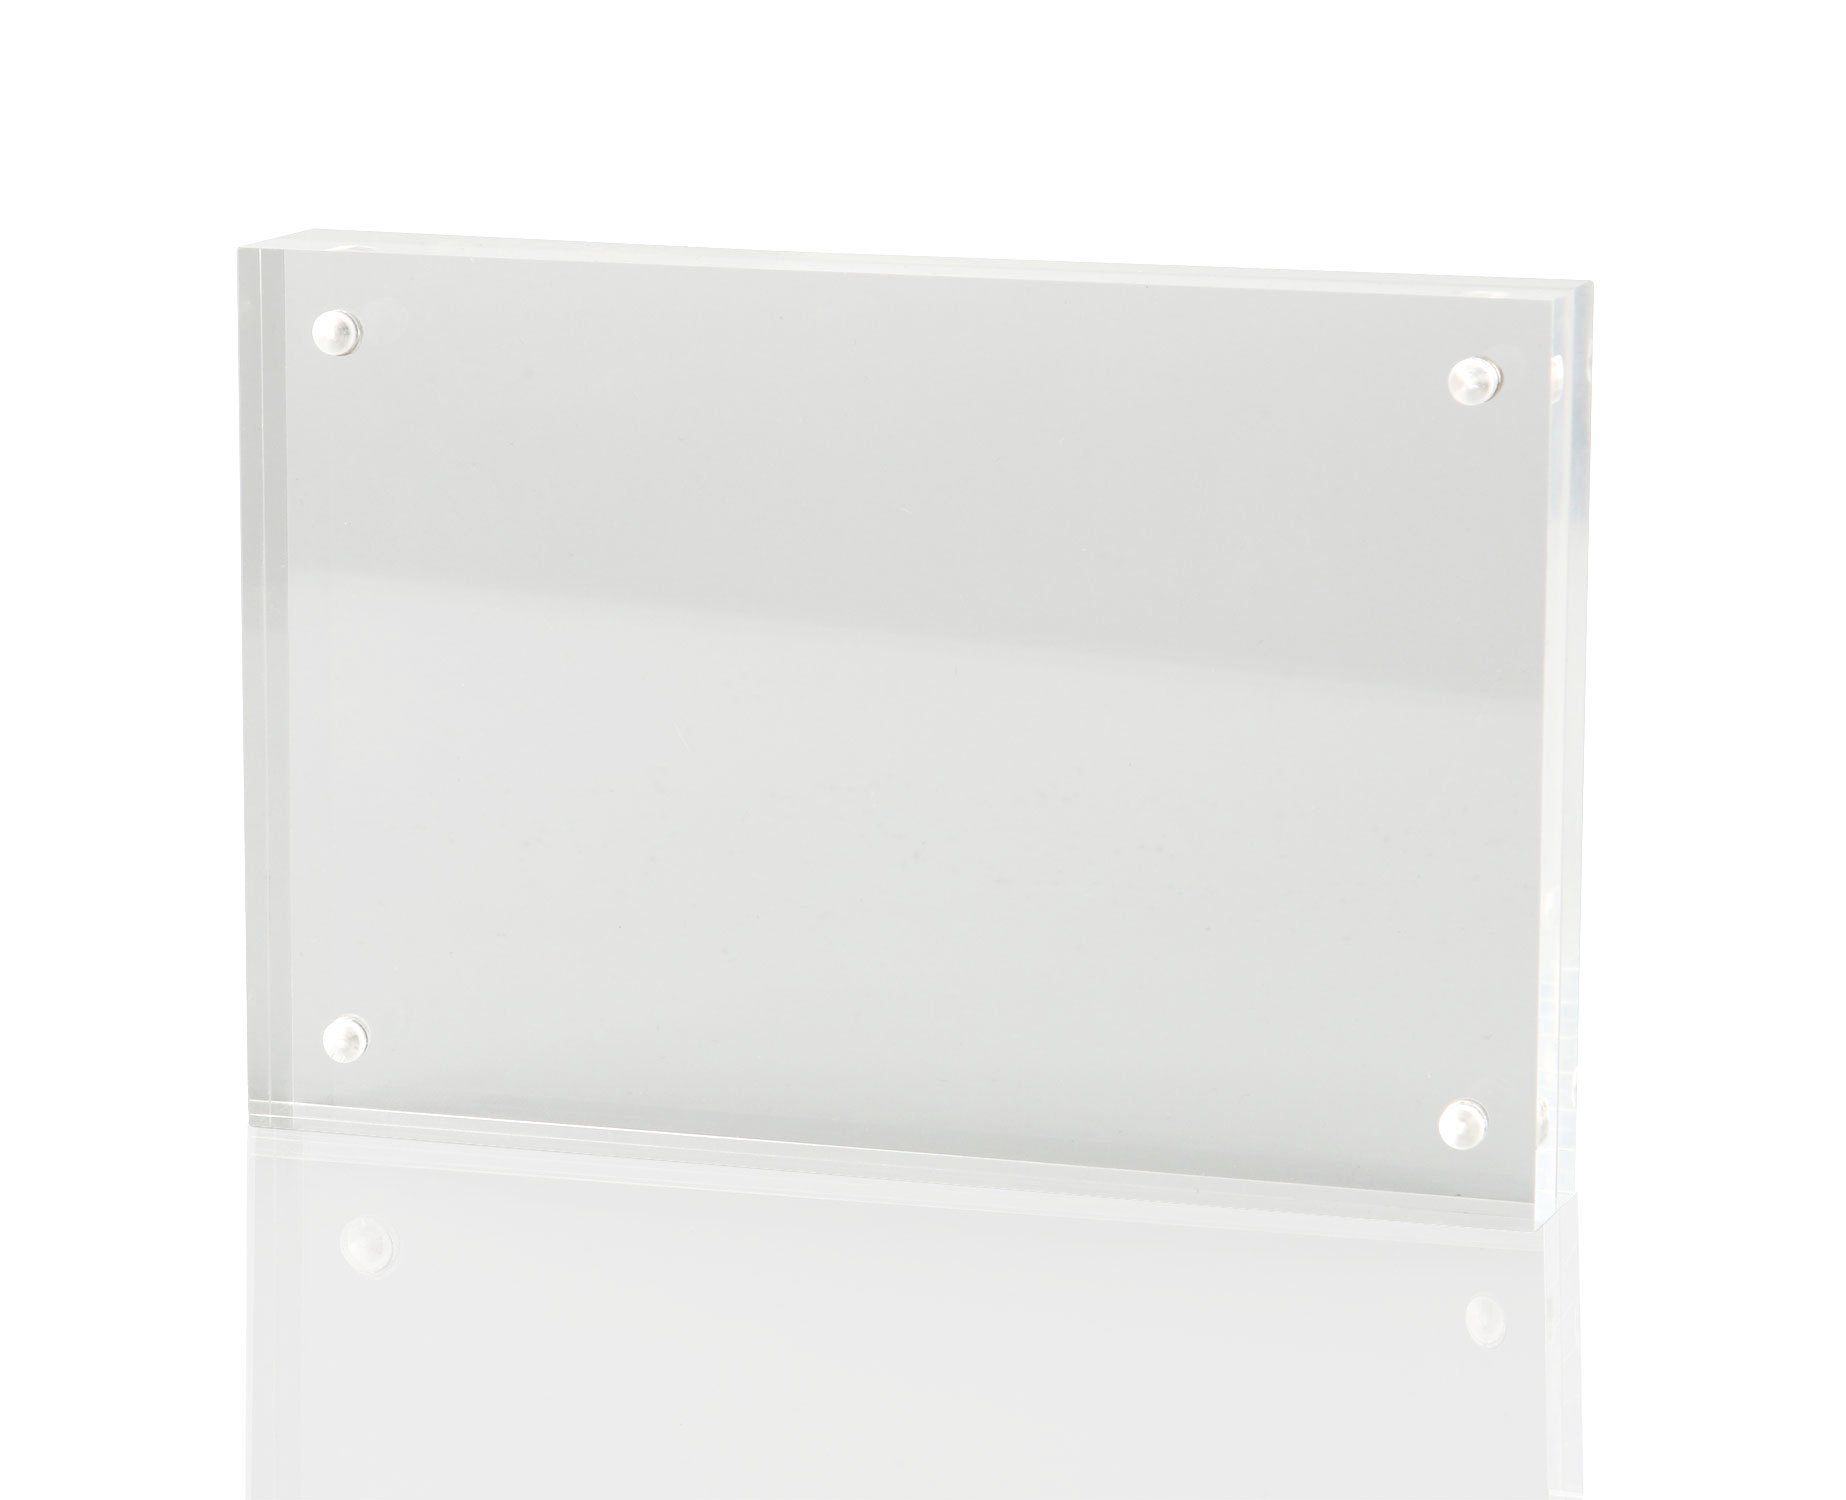 AULife 5X7 Inches Clear Acrylic Magnet Photo Frame; Desktop Frames, Thicker Than Standard for Double Sided Photo Showed